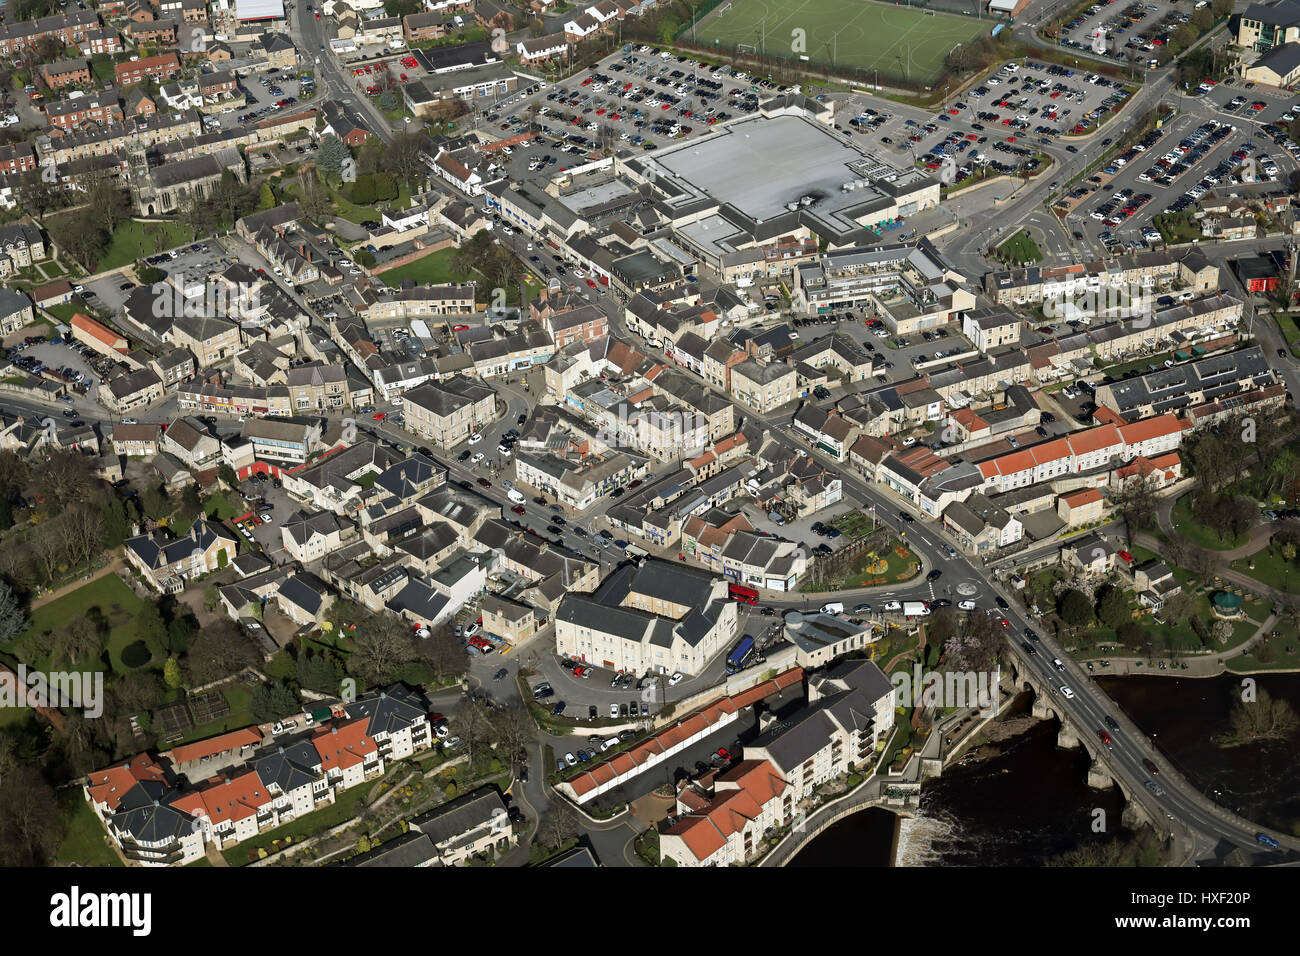 aerial view of Wetherby town centre, West Yorkshire, UK - Stock Image